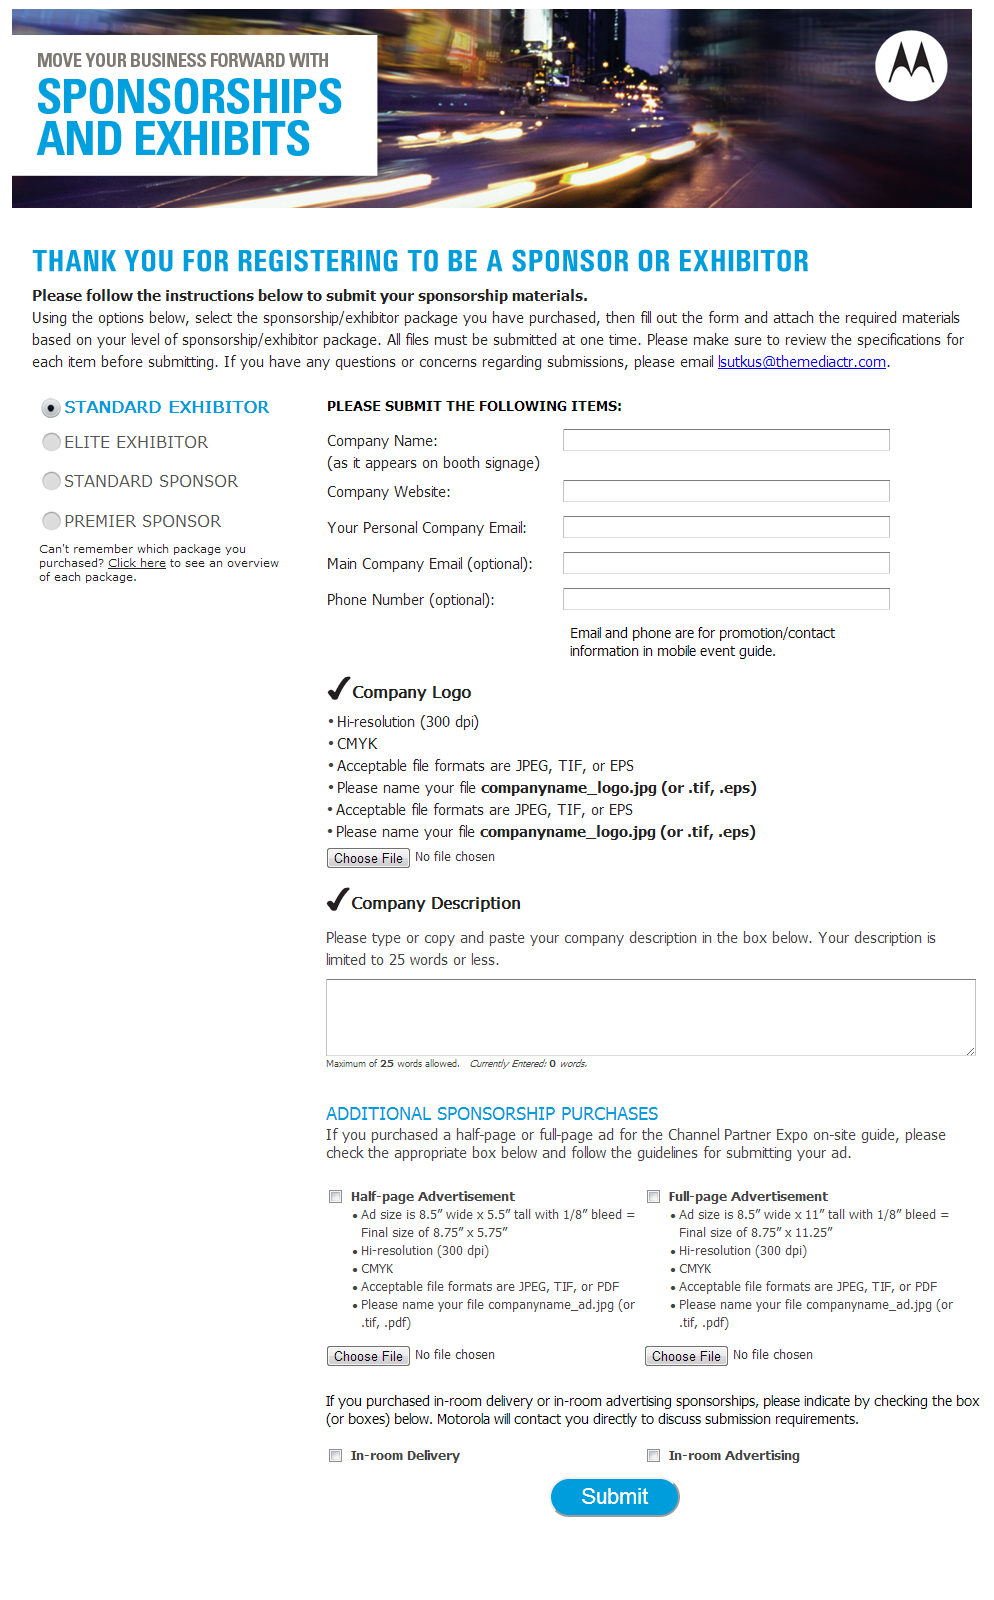 Motorola Digital Collection / Sign Up Forms | Simple SEO Group